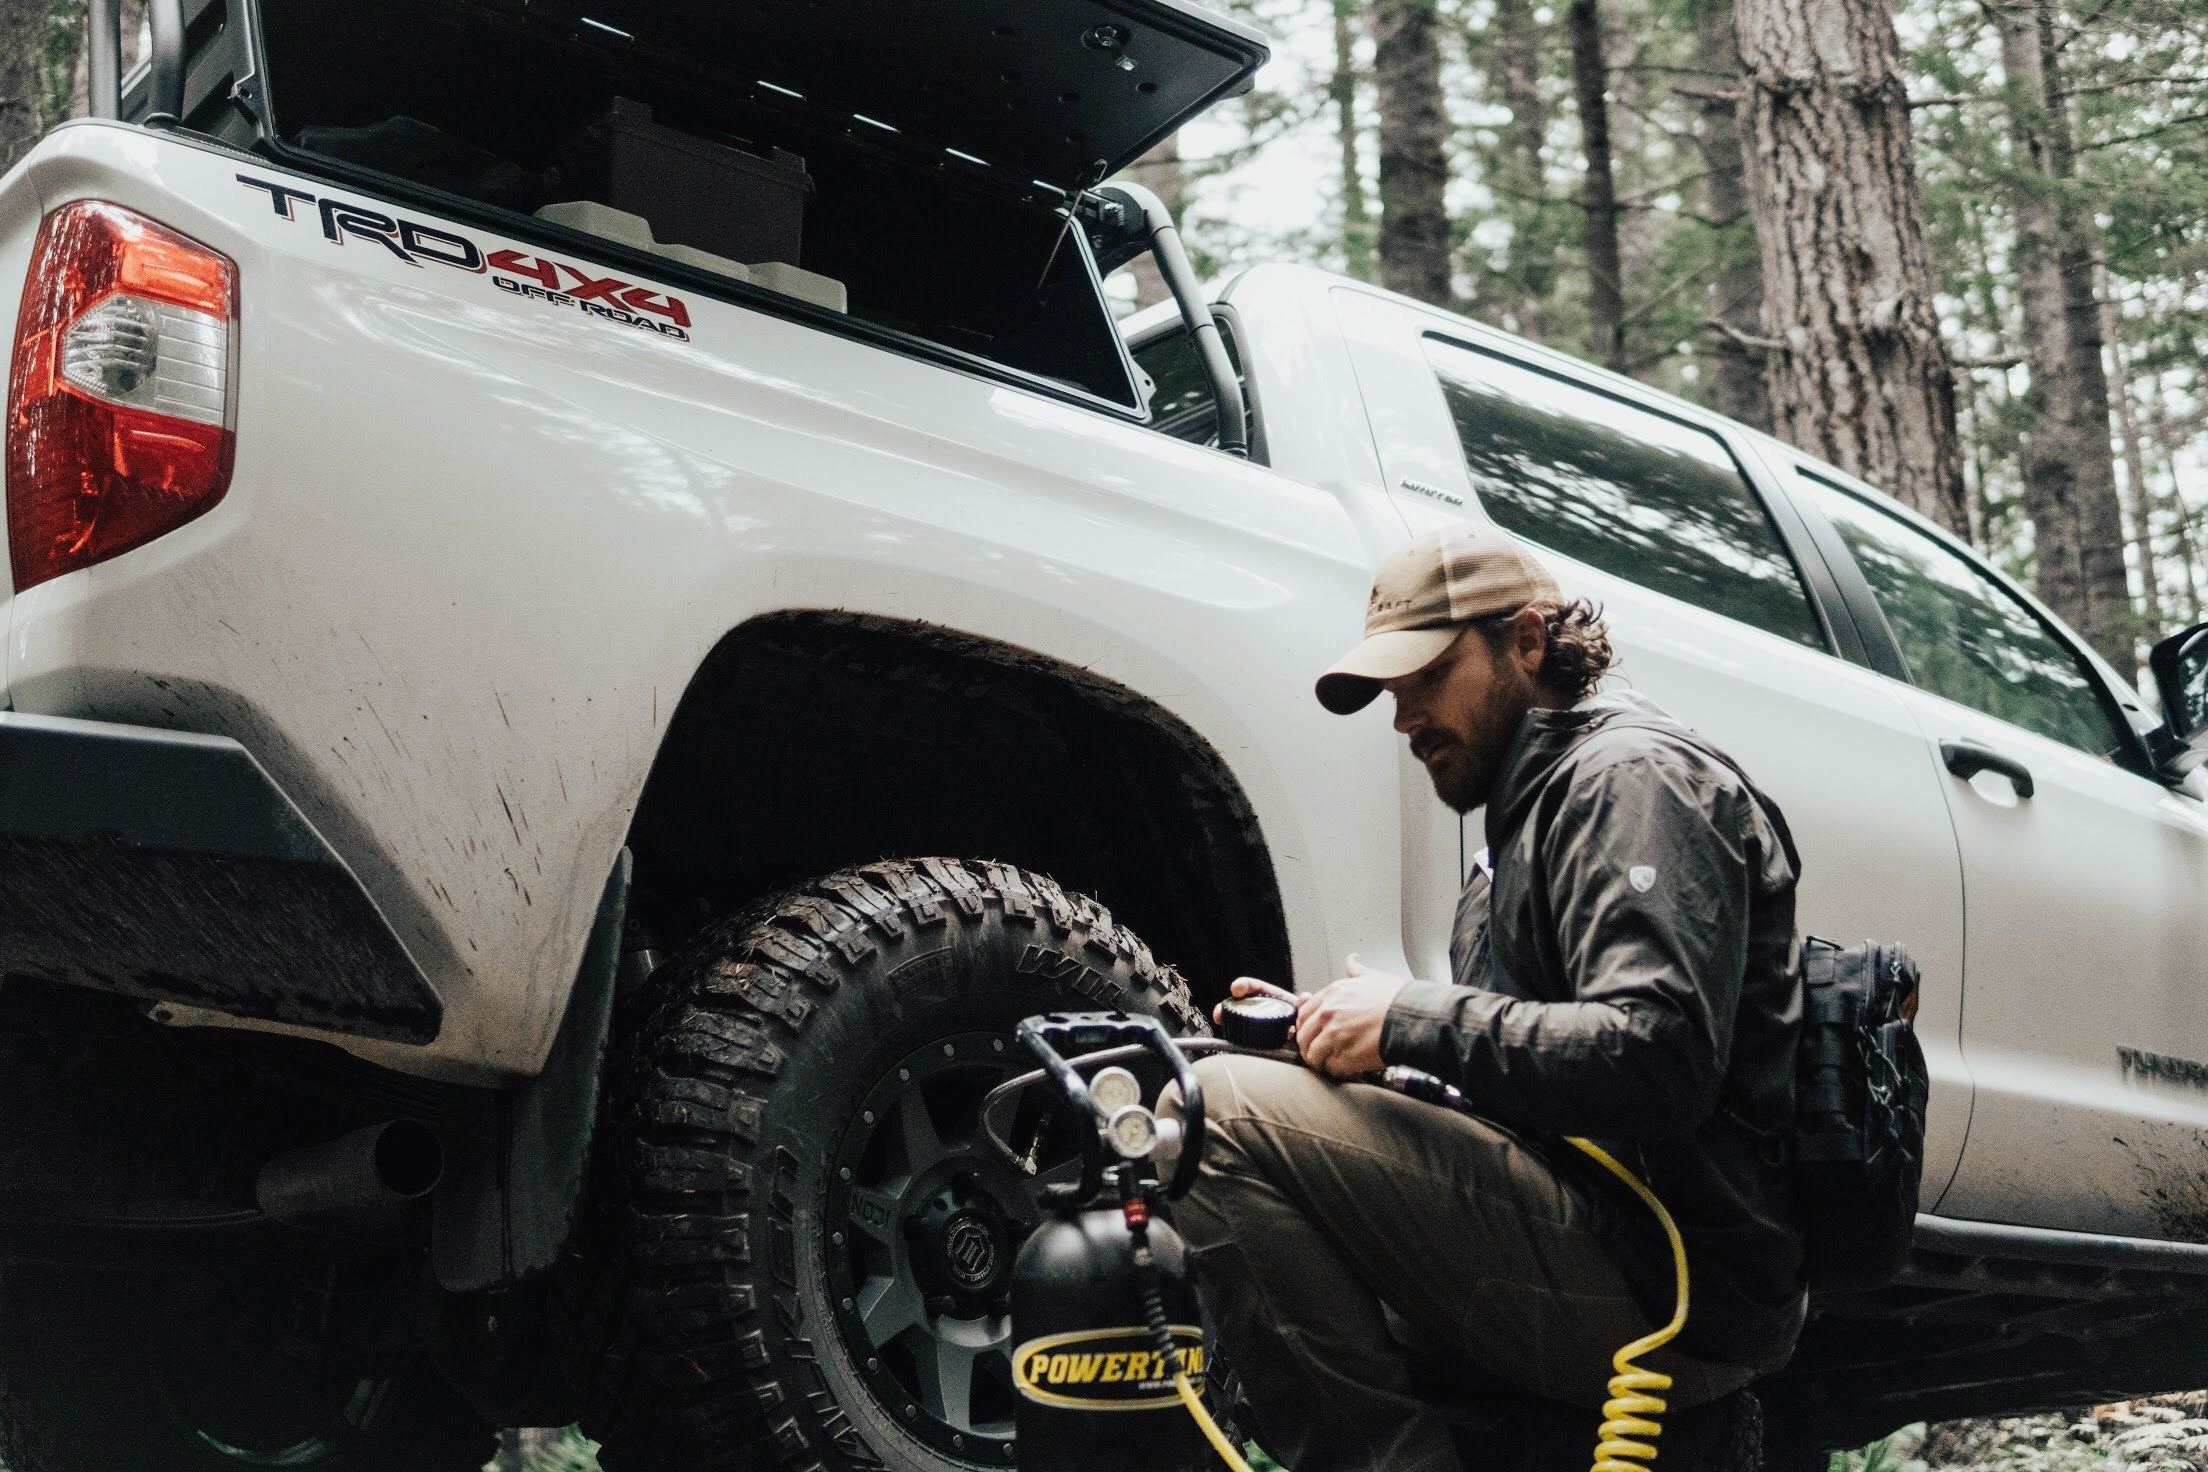 Travis Hess airing up a Tundra with a Power Tank